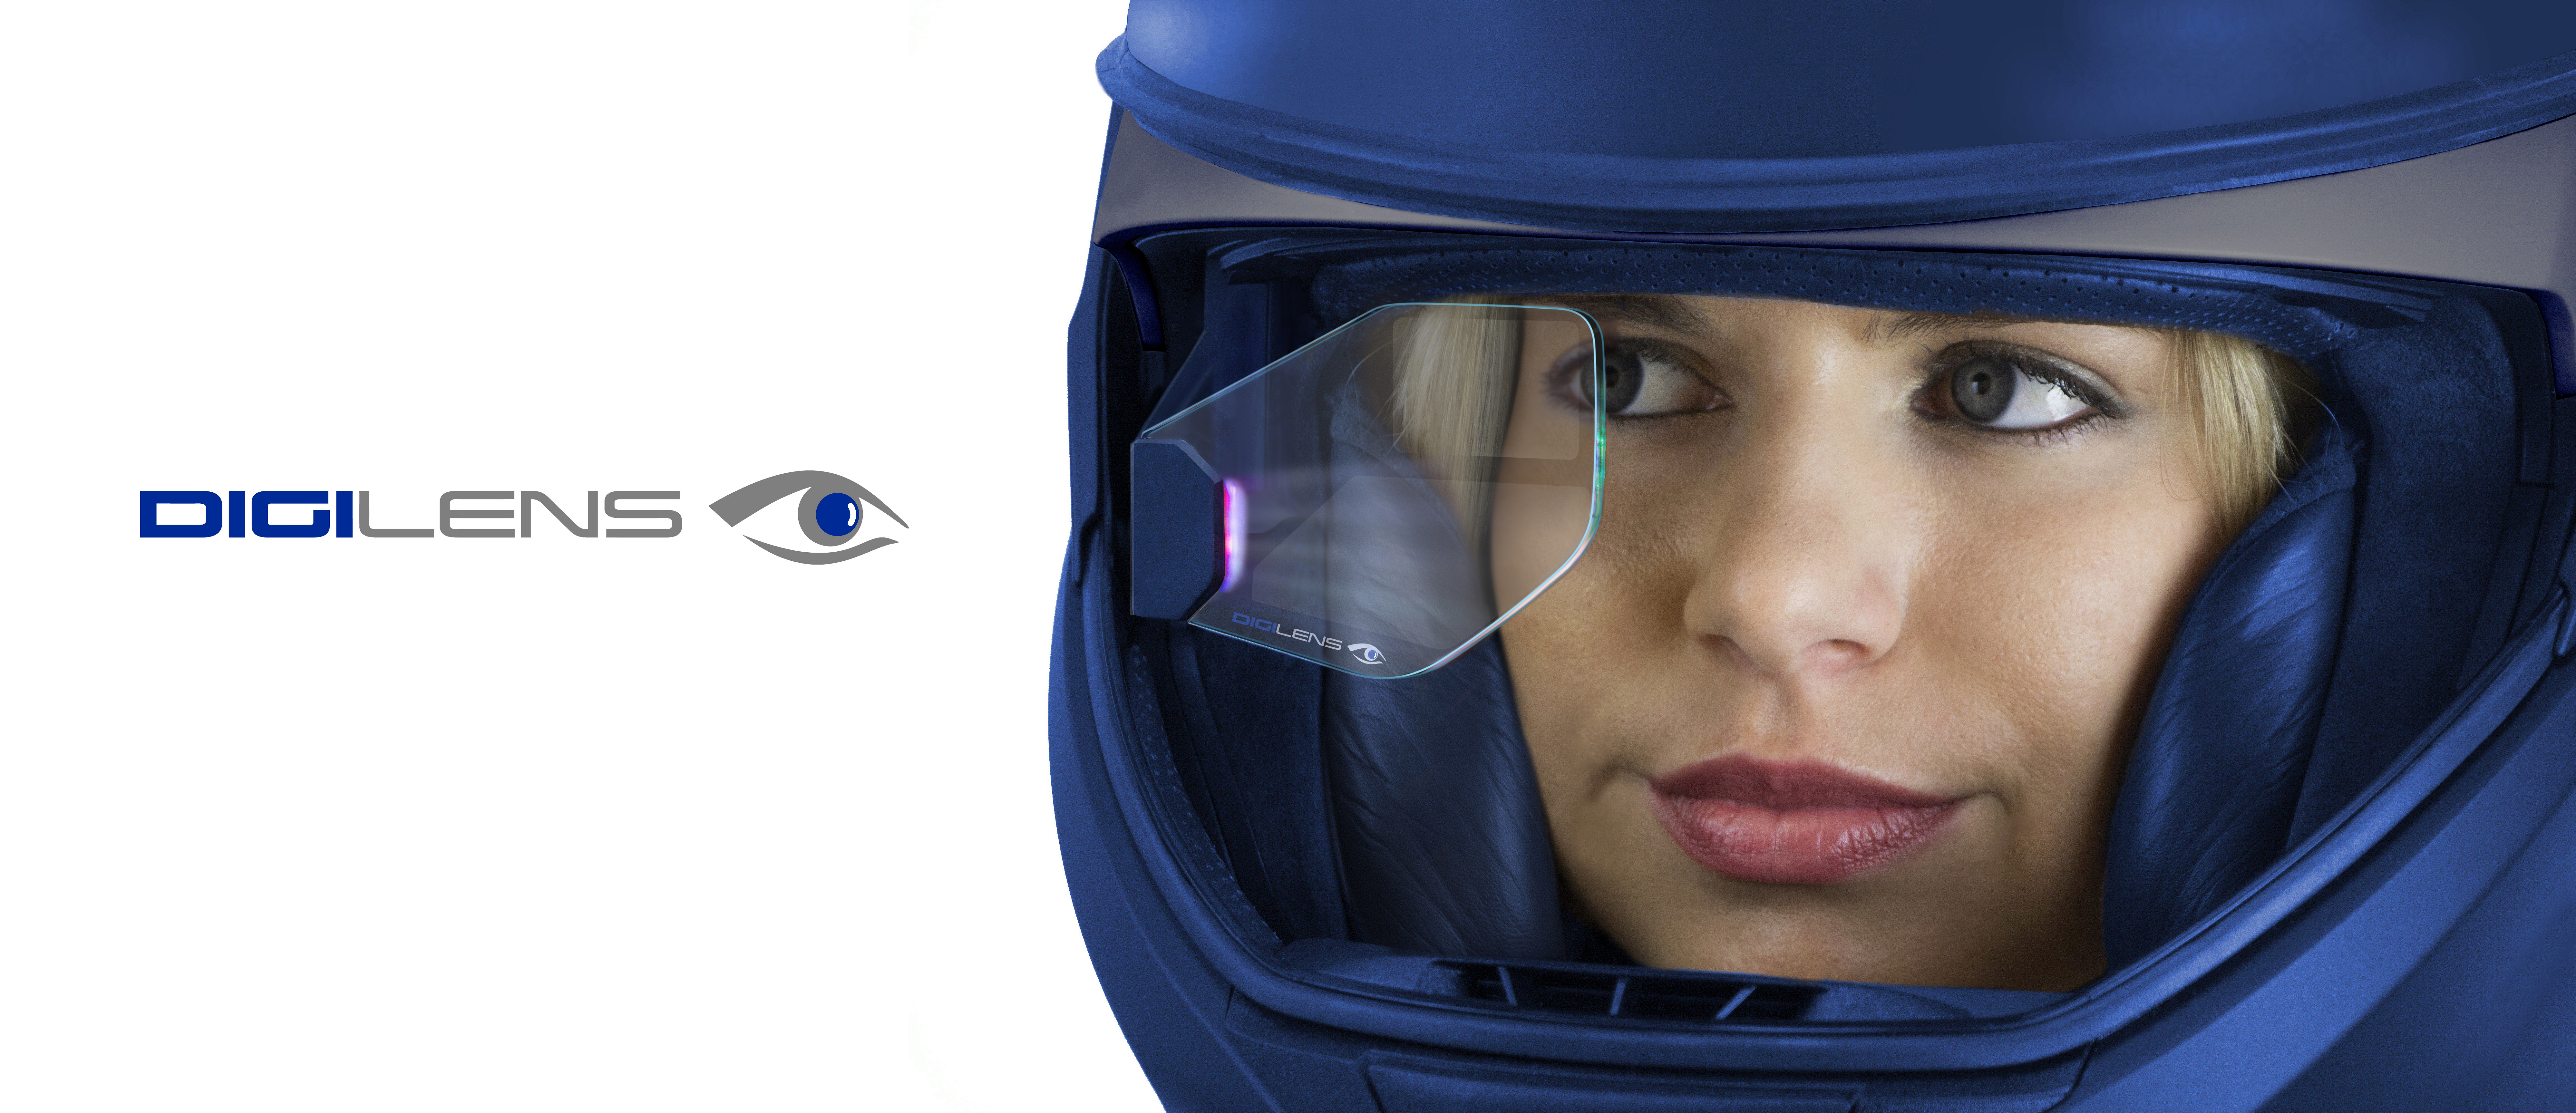 BMW is bringing augmented reality to motorcycle helmets through DigiLens technology.